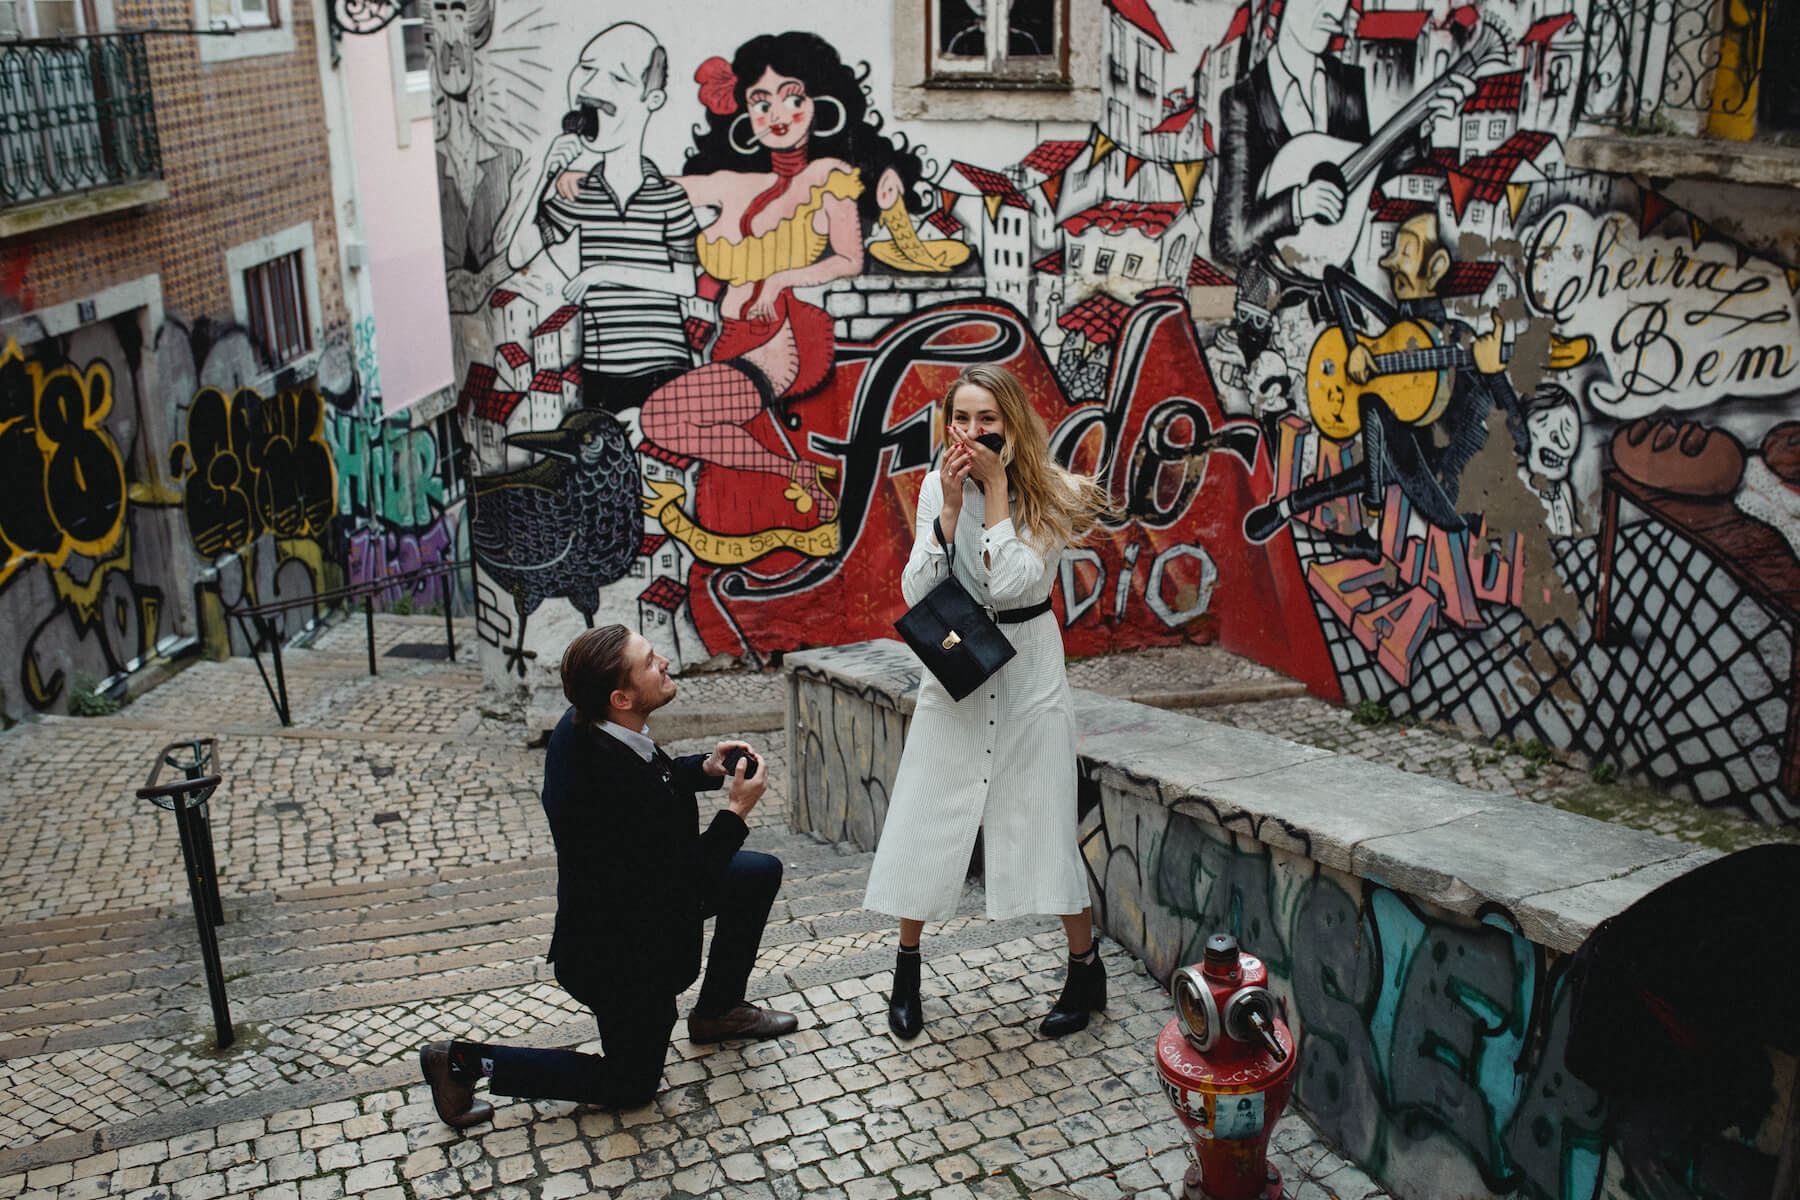 Man is on one knee proposing to the woman, who looks surprised. They are standing in front of a colourful wall in Lisbon.